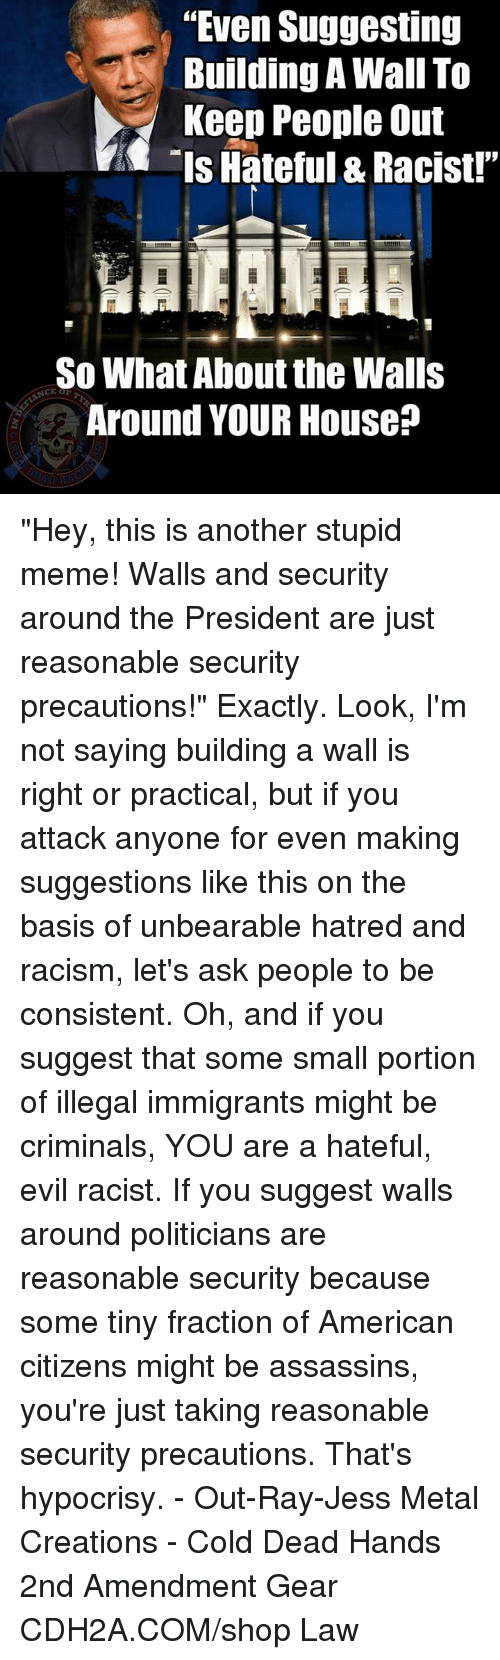 "Stupid Memes: ""Even Suggesting  uilding A Wall To  Keep People Out  Is Hateful & Racist!""  So What About the Walls  Around YOUR House? ""Hey, this is another stupid meme!  Walls and security around the President are just reasonable security precautions!""    Exactly.  Look, I'm not saying building a wall is right or practical, but if you attack anyone for even making suggestions like this on the basis of unbearable hatred and racism, let's ask people to be consistent.  Oh, and if you suggest that some small portion of illegal immigrants might be criminals, YOU are a hateful, evil racist.  If you suggest walls around politicians are reasonable security because some tiny fraction of American citizens might be assassins, you're just taking reasonable security precautions.   That's hypocrisy. - Out-Ray-Jess Metal Creations - Cold Dead Hands 2nd Amendment Gear CDH2A.COM/shop Law"